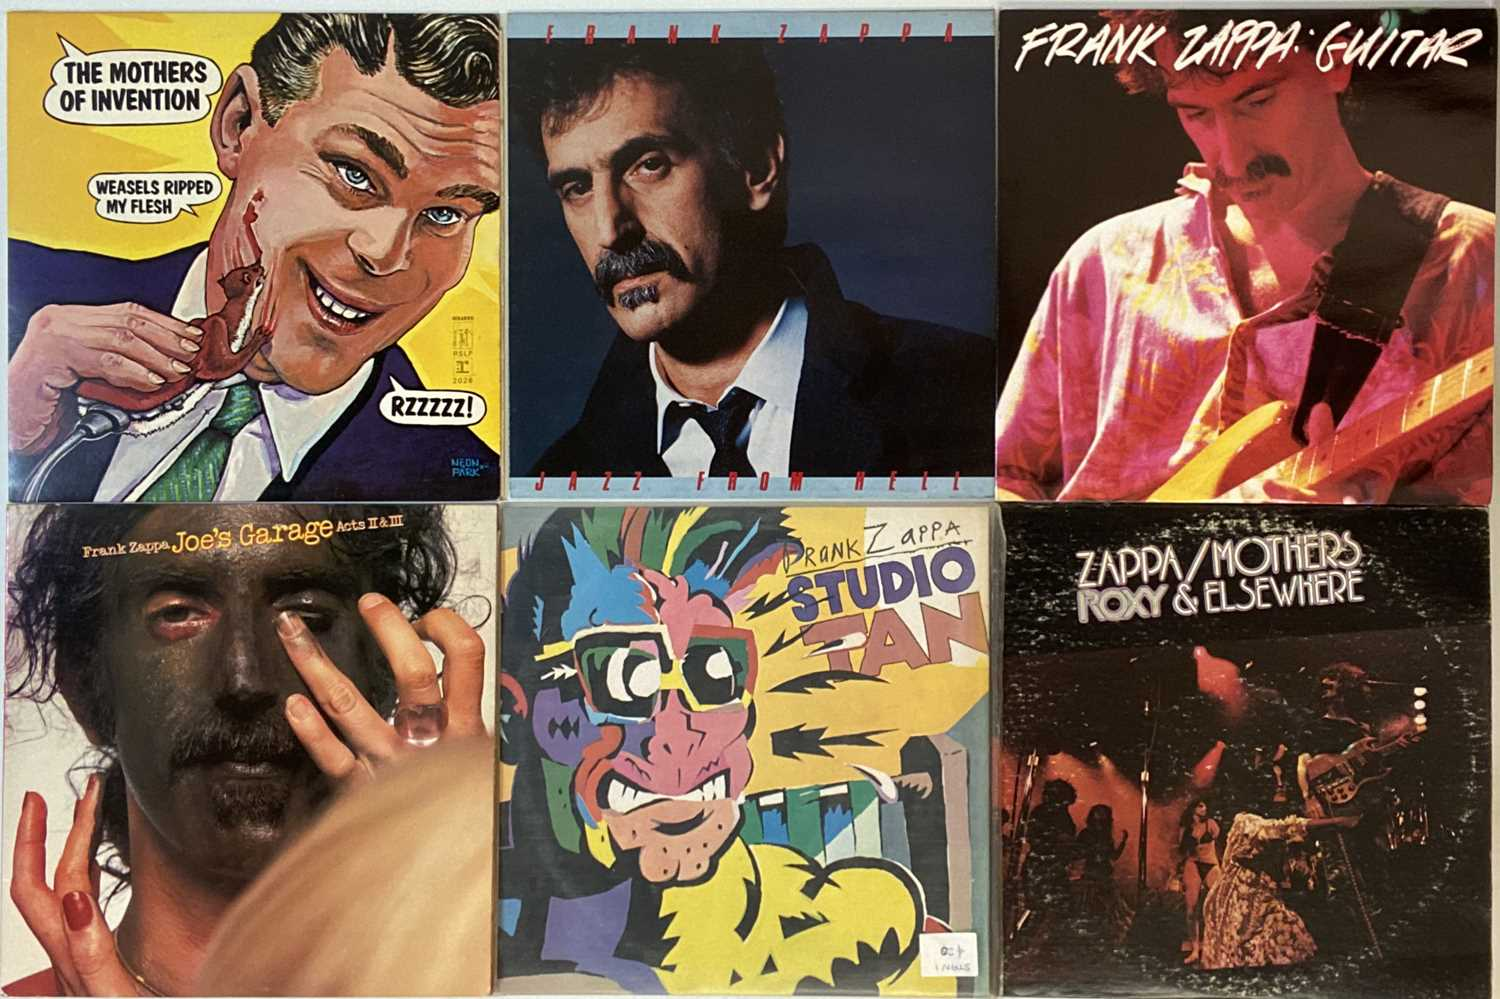 FRANK ZAPPA - LP COLLECTION - Image 2 of 3